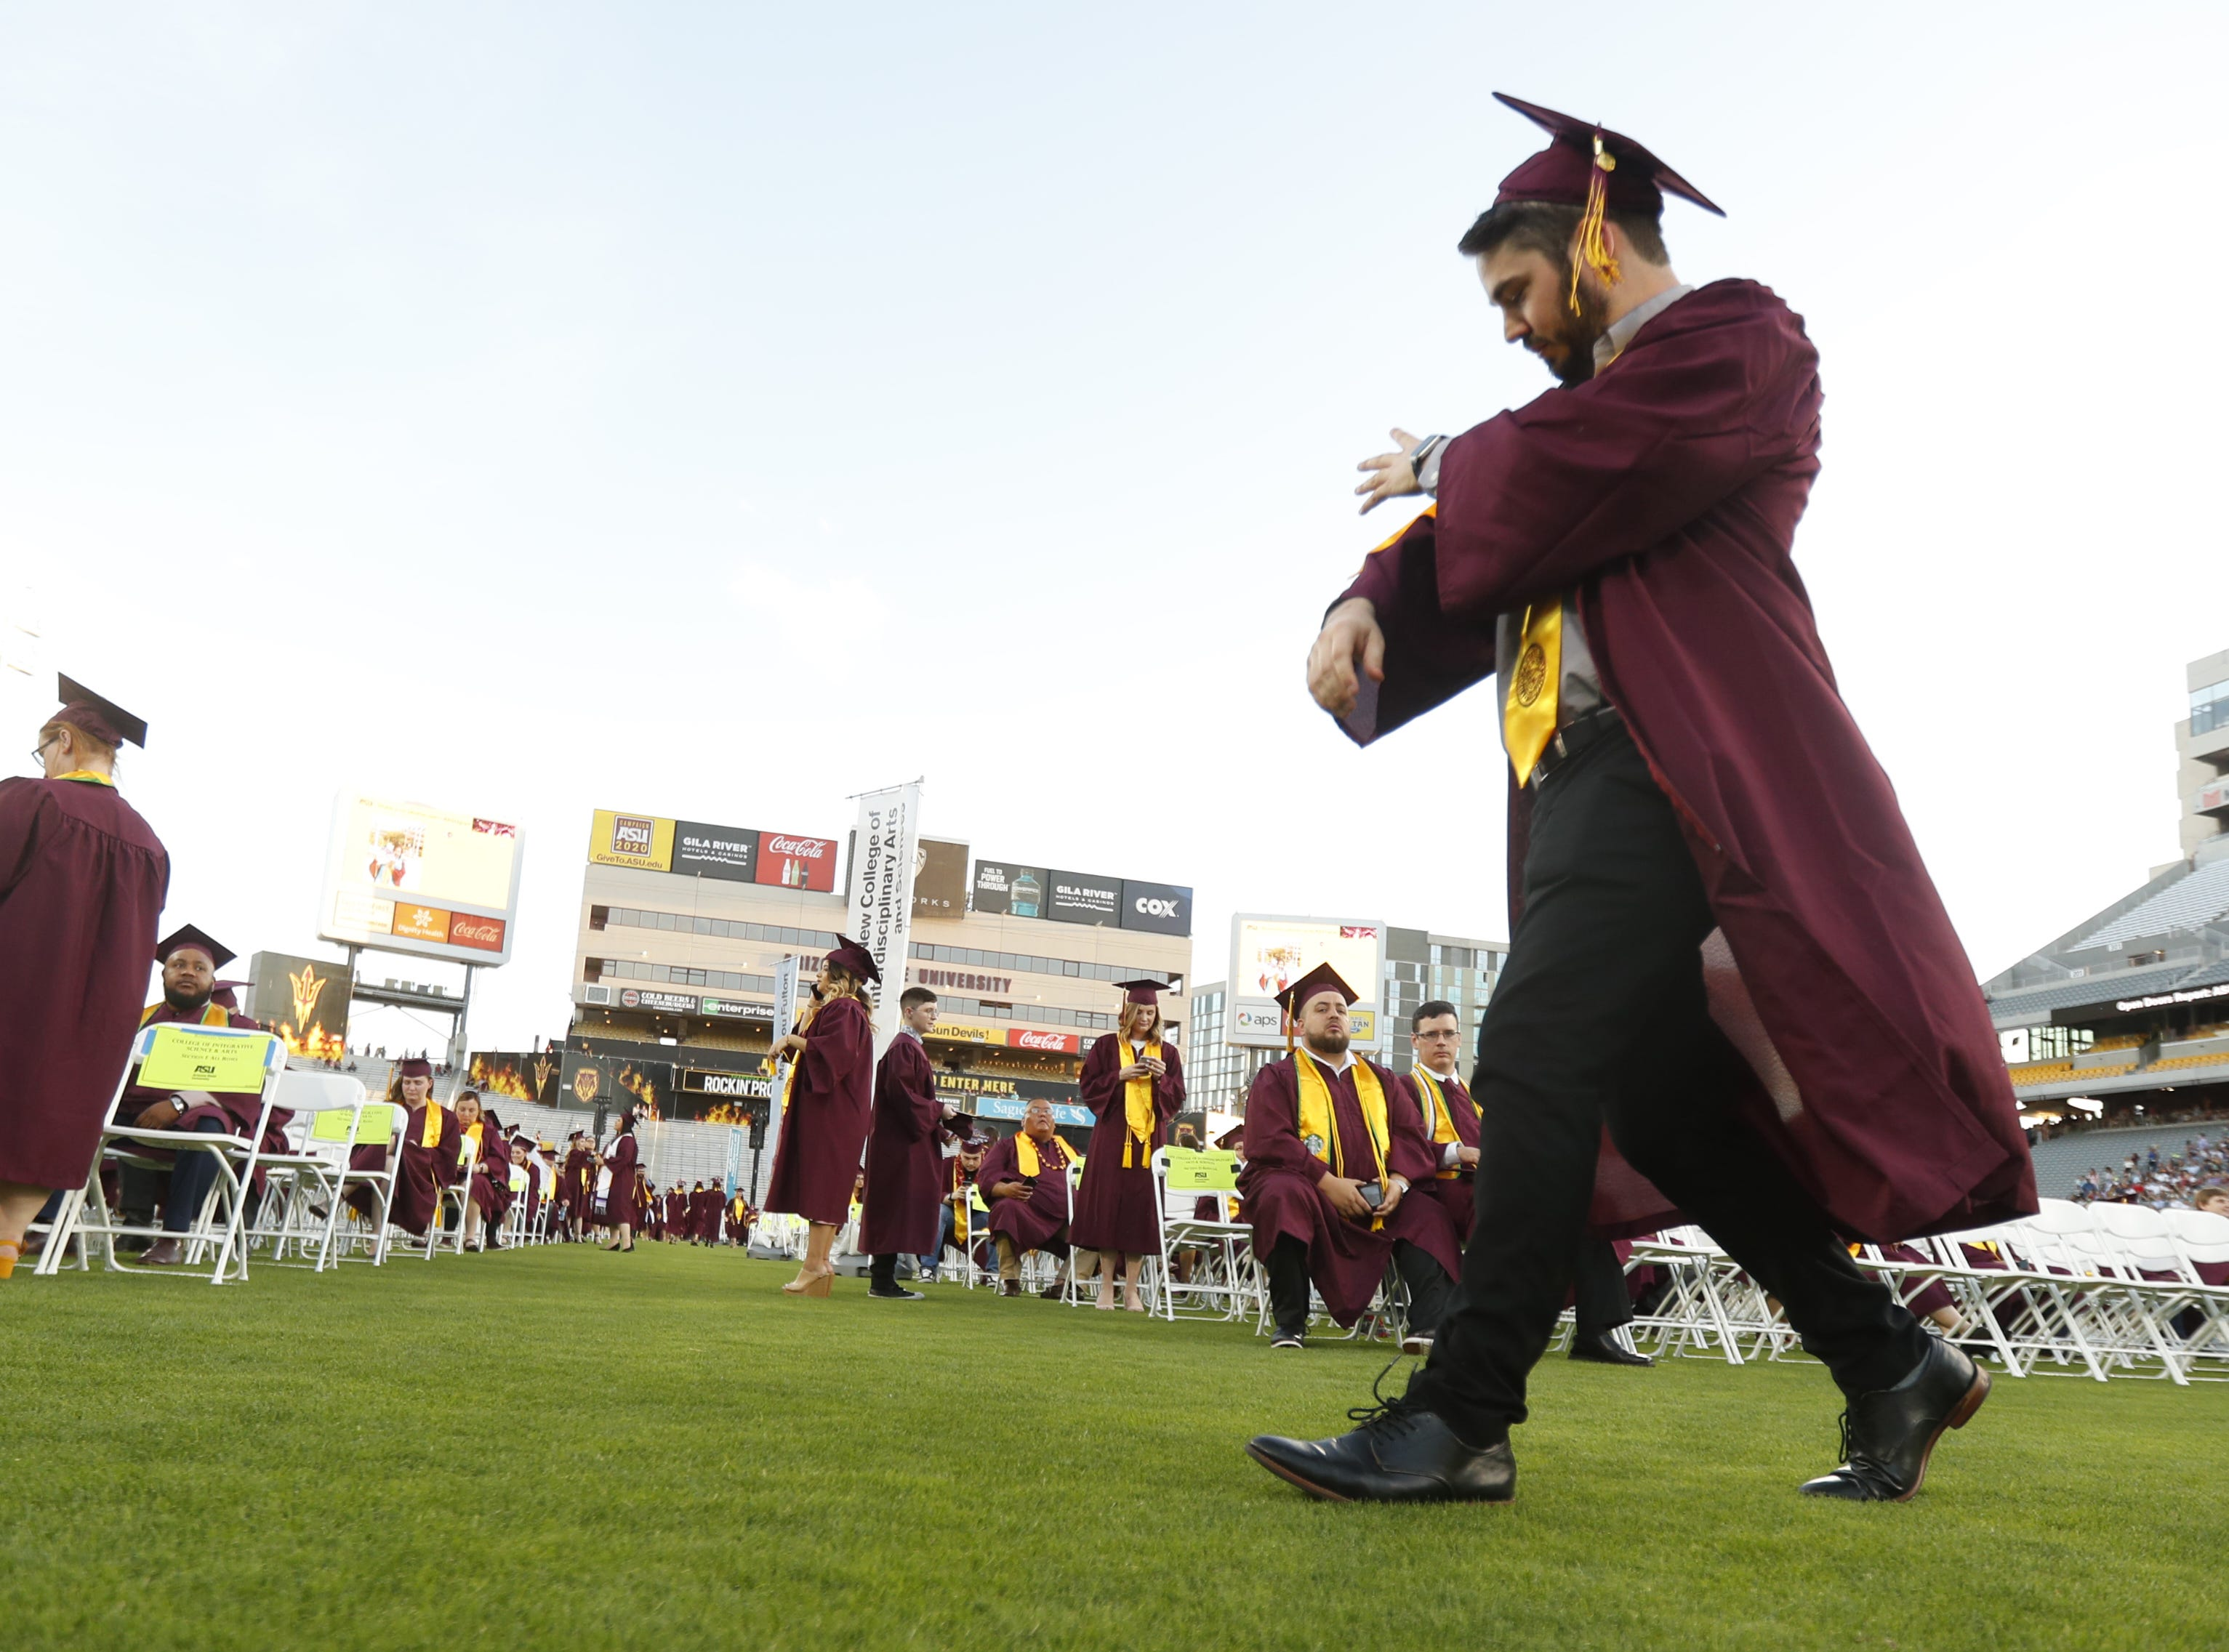 ASU soon-to-be grads arrive during ASU's Undergraduate Commencement at Sun Devil Stadium in Tempe, Ariz. on May 6, 2019.